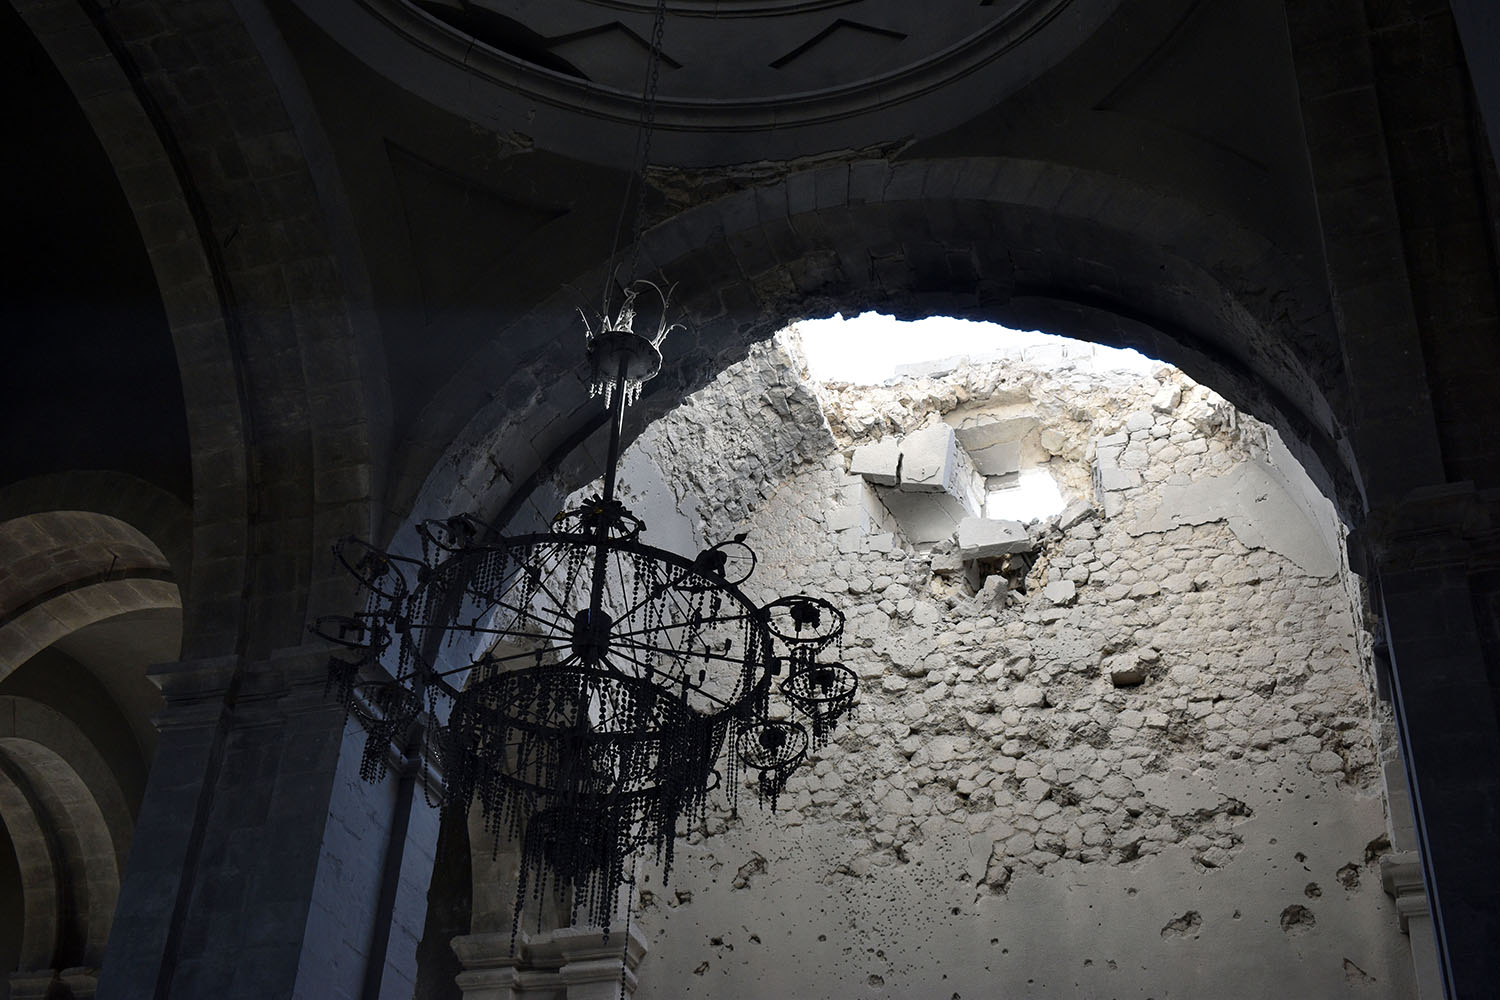 The Shushi church was partially destroyed in a recent Azerbaijani attack.